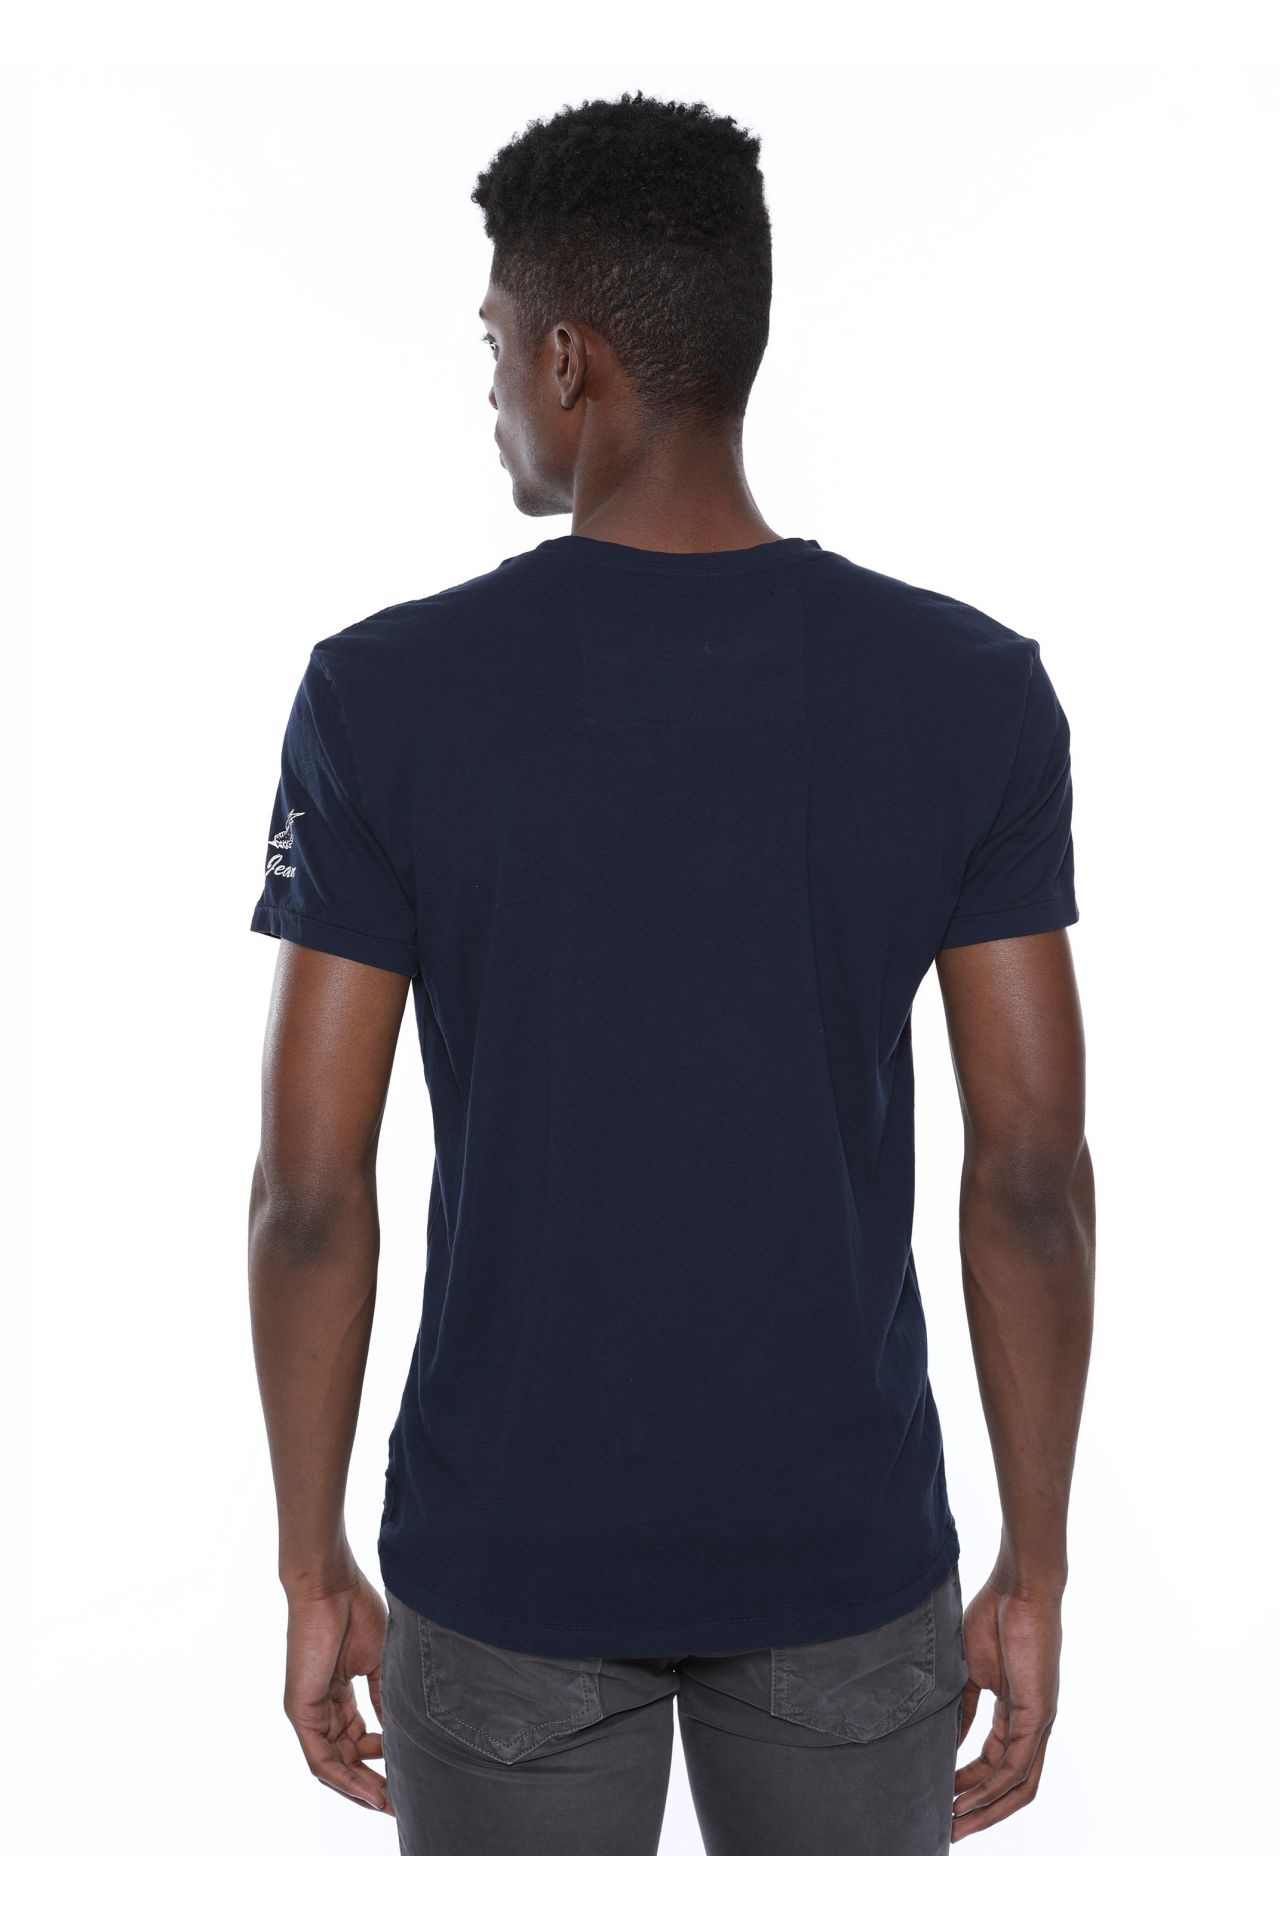 TRADITIONAL EAGLE TEE IN NAVY